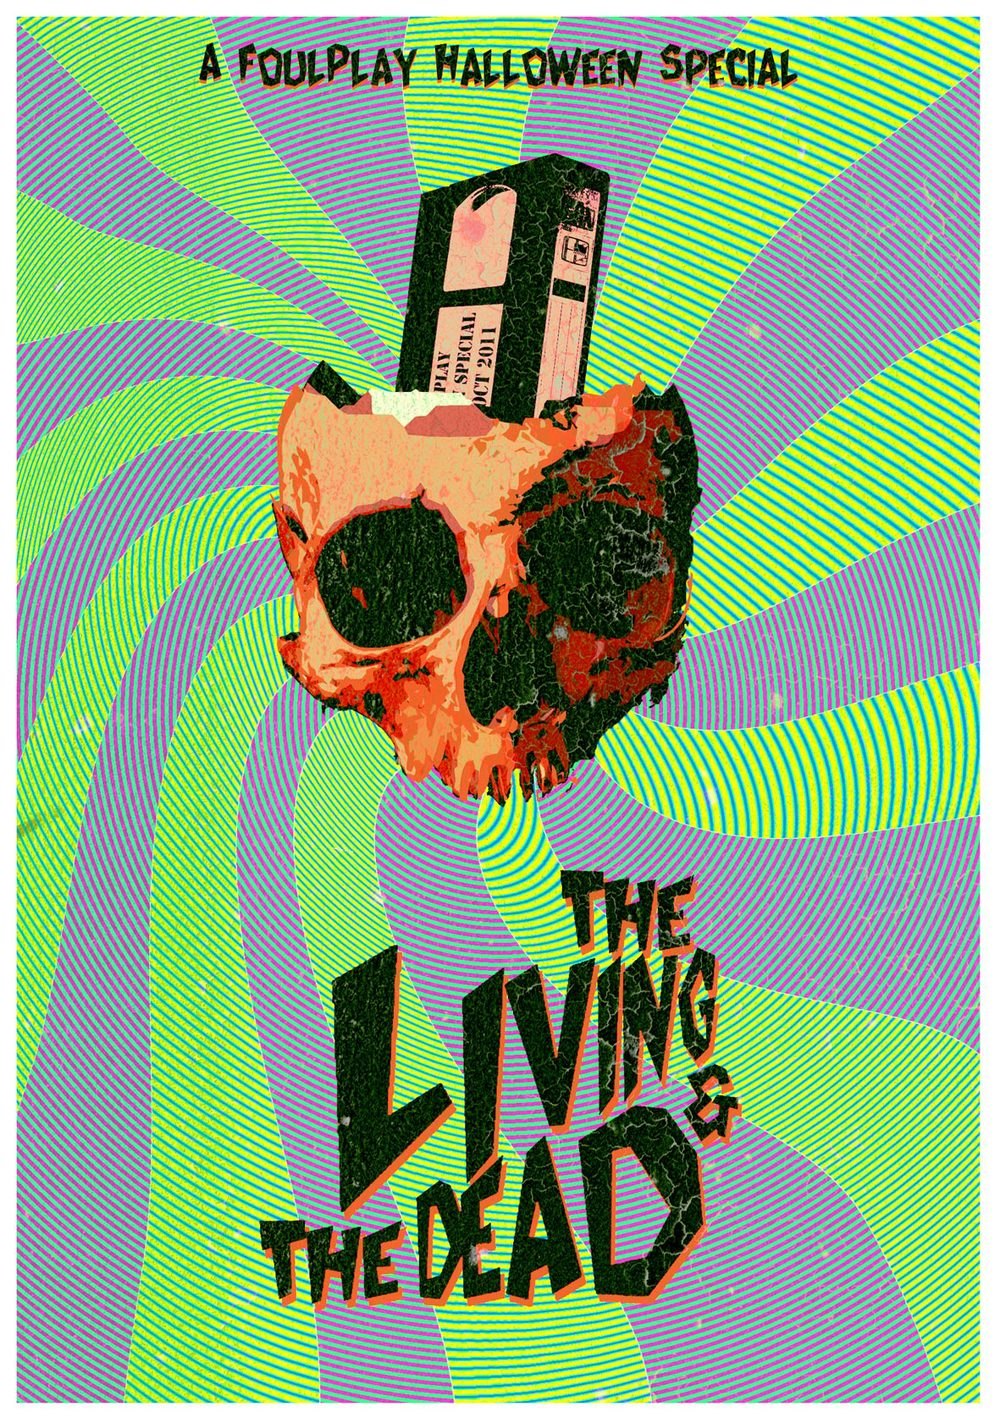 Flyer for the FoulPlay Halloween Special immersive theatre production ' The Living and the Dead '.